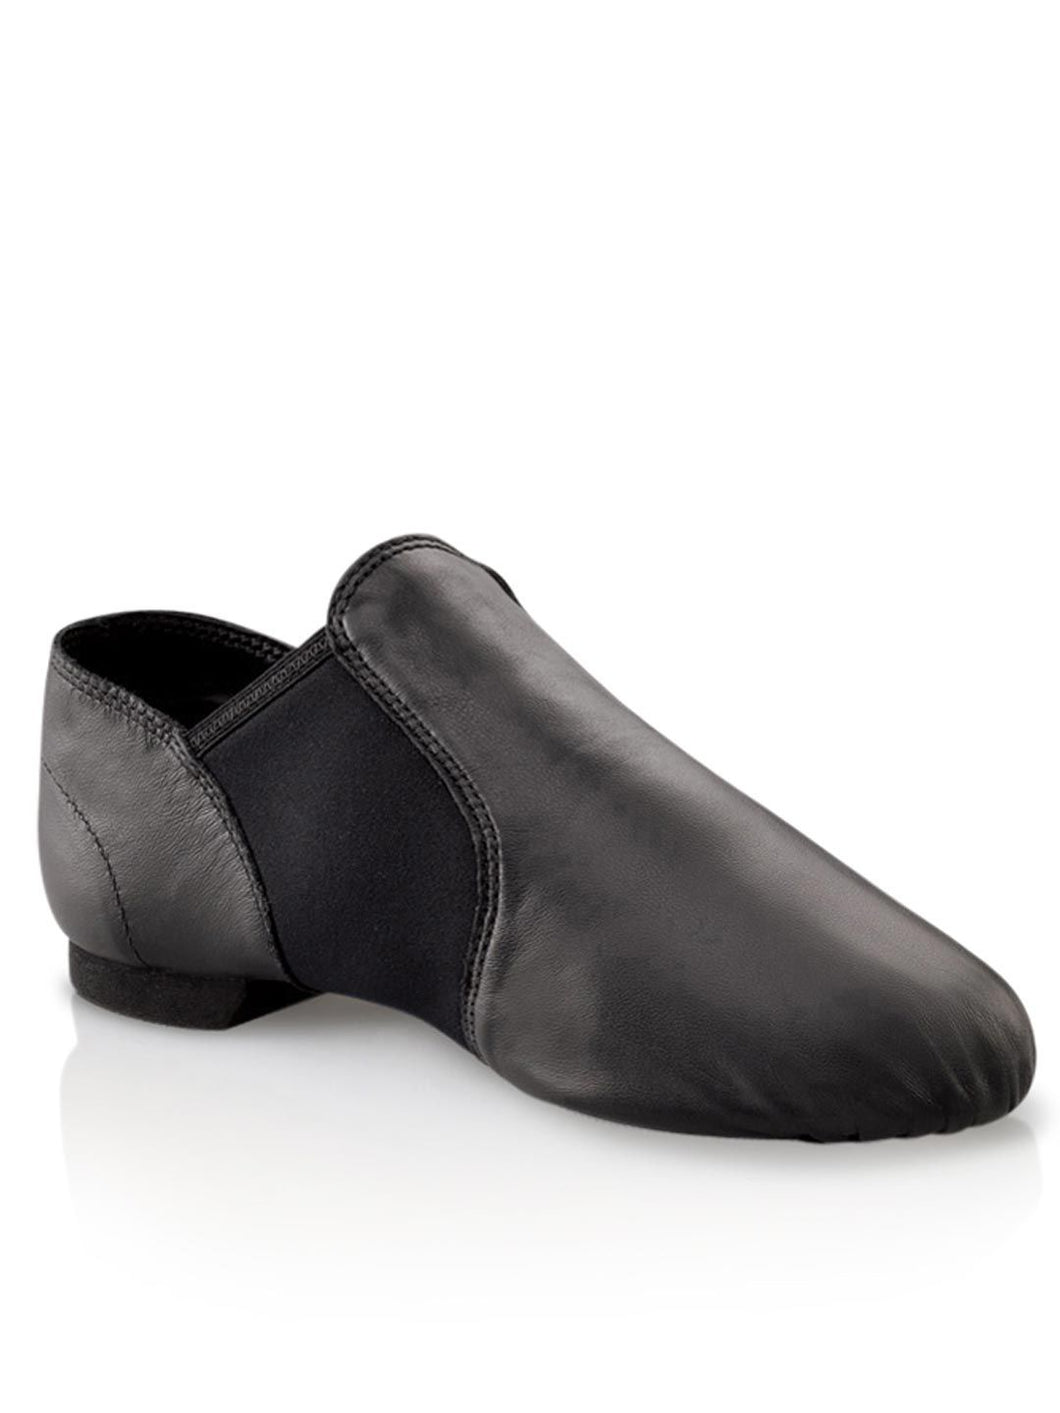 EJ2 - Black, SlipOn Jazz Oxford, ADULT SIZE